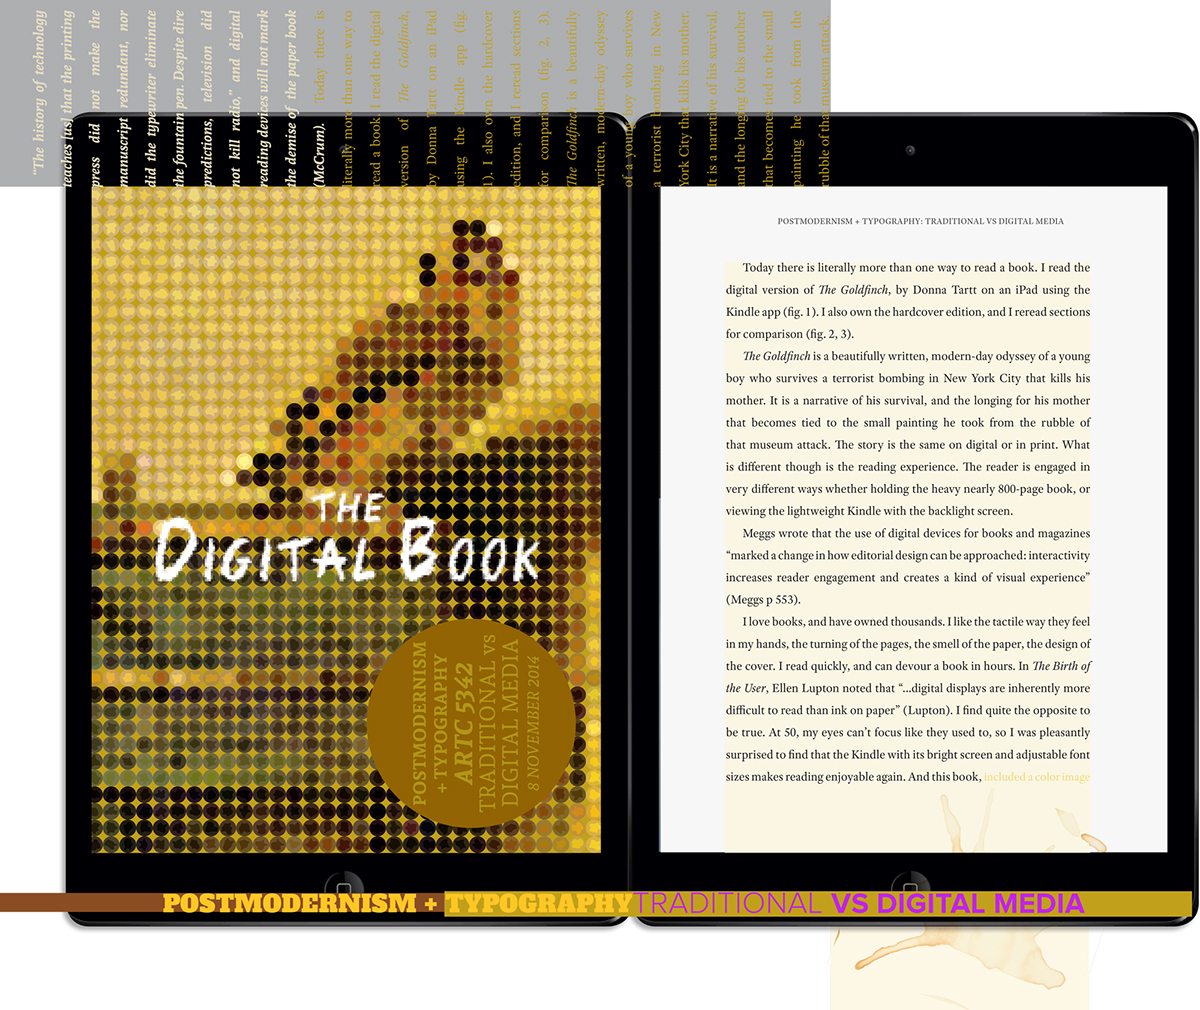 lisa willard postmodernism in typography the digital book essay